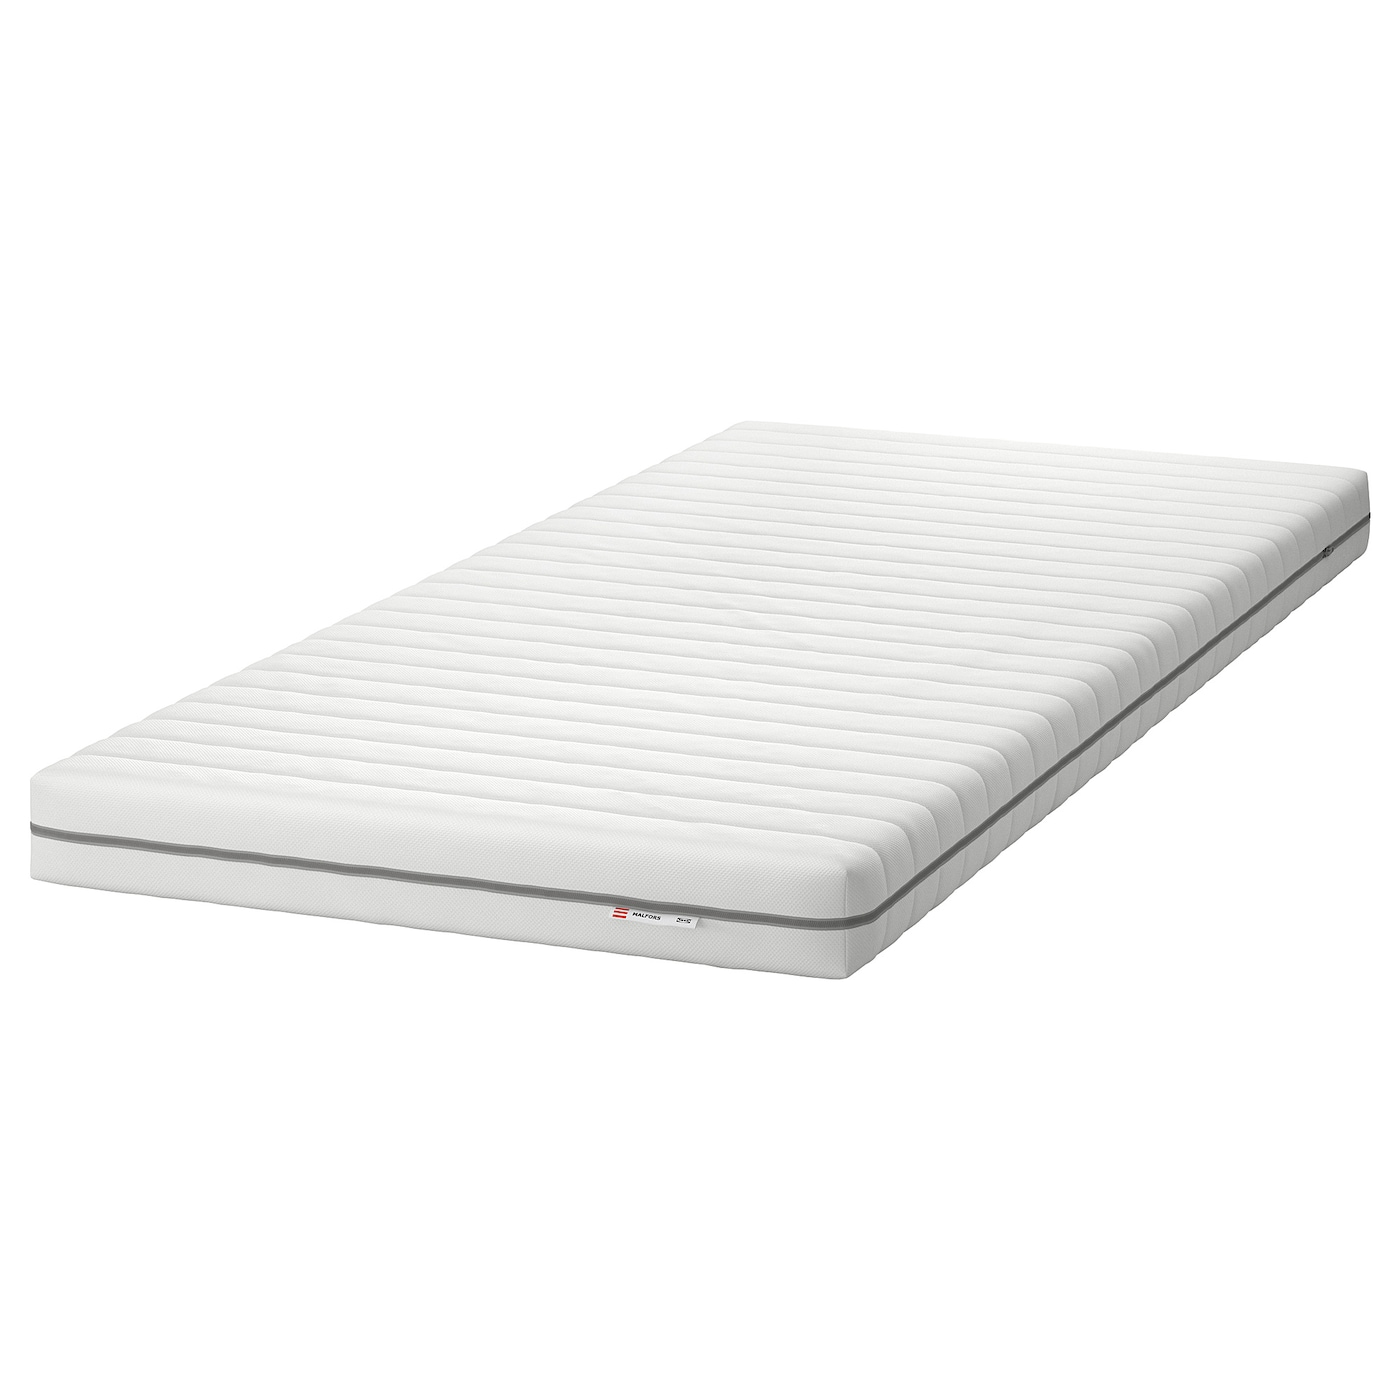 malfors matelas en mousse ferme blanc 80 x 200 cm ikea. Black Bedroom Furniture Sets. Home Design Ideas